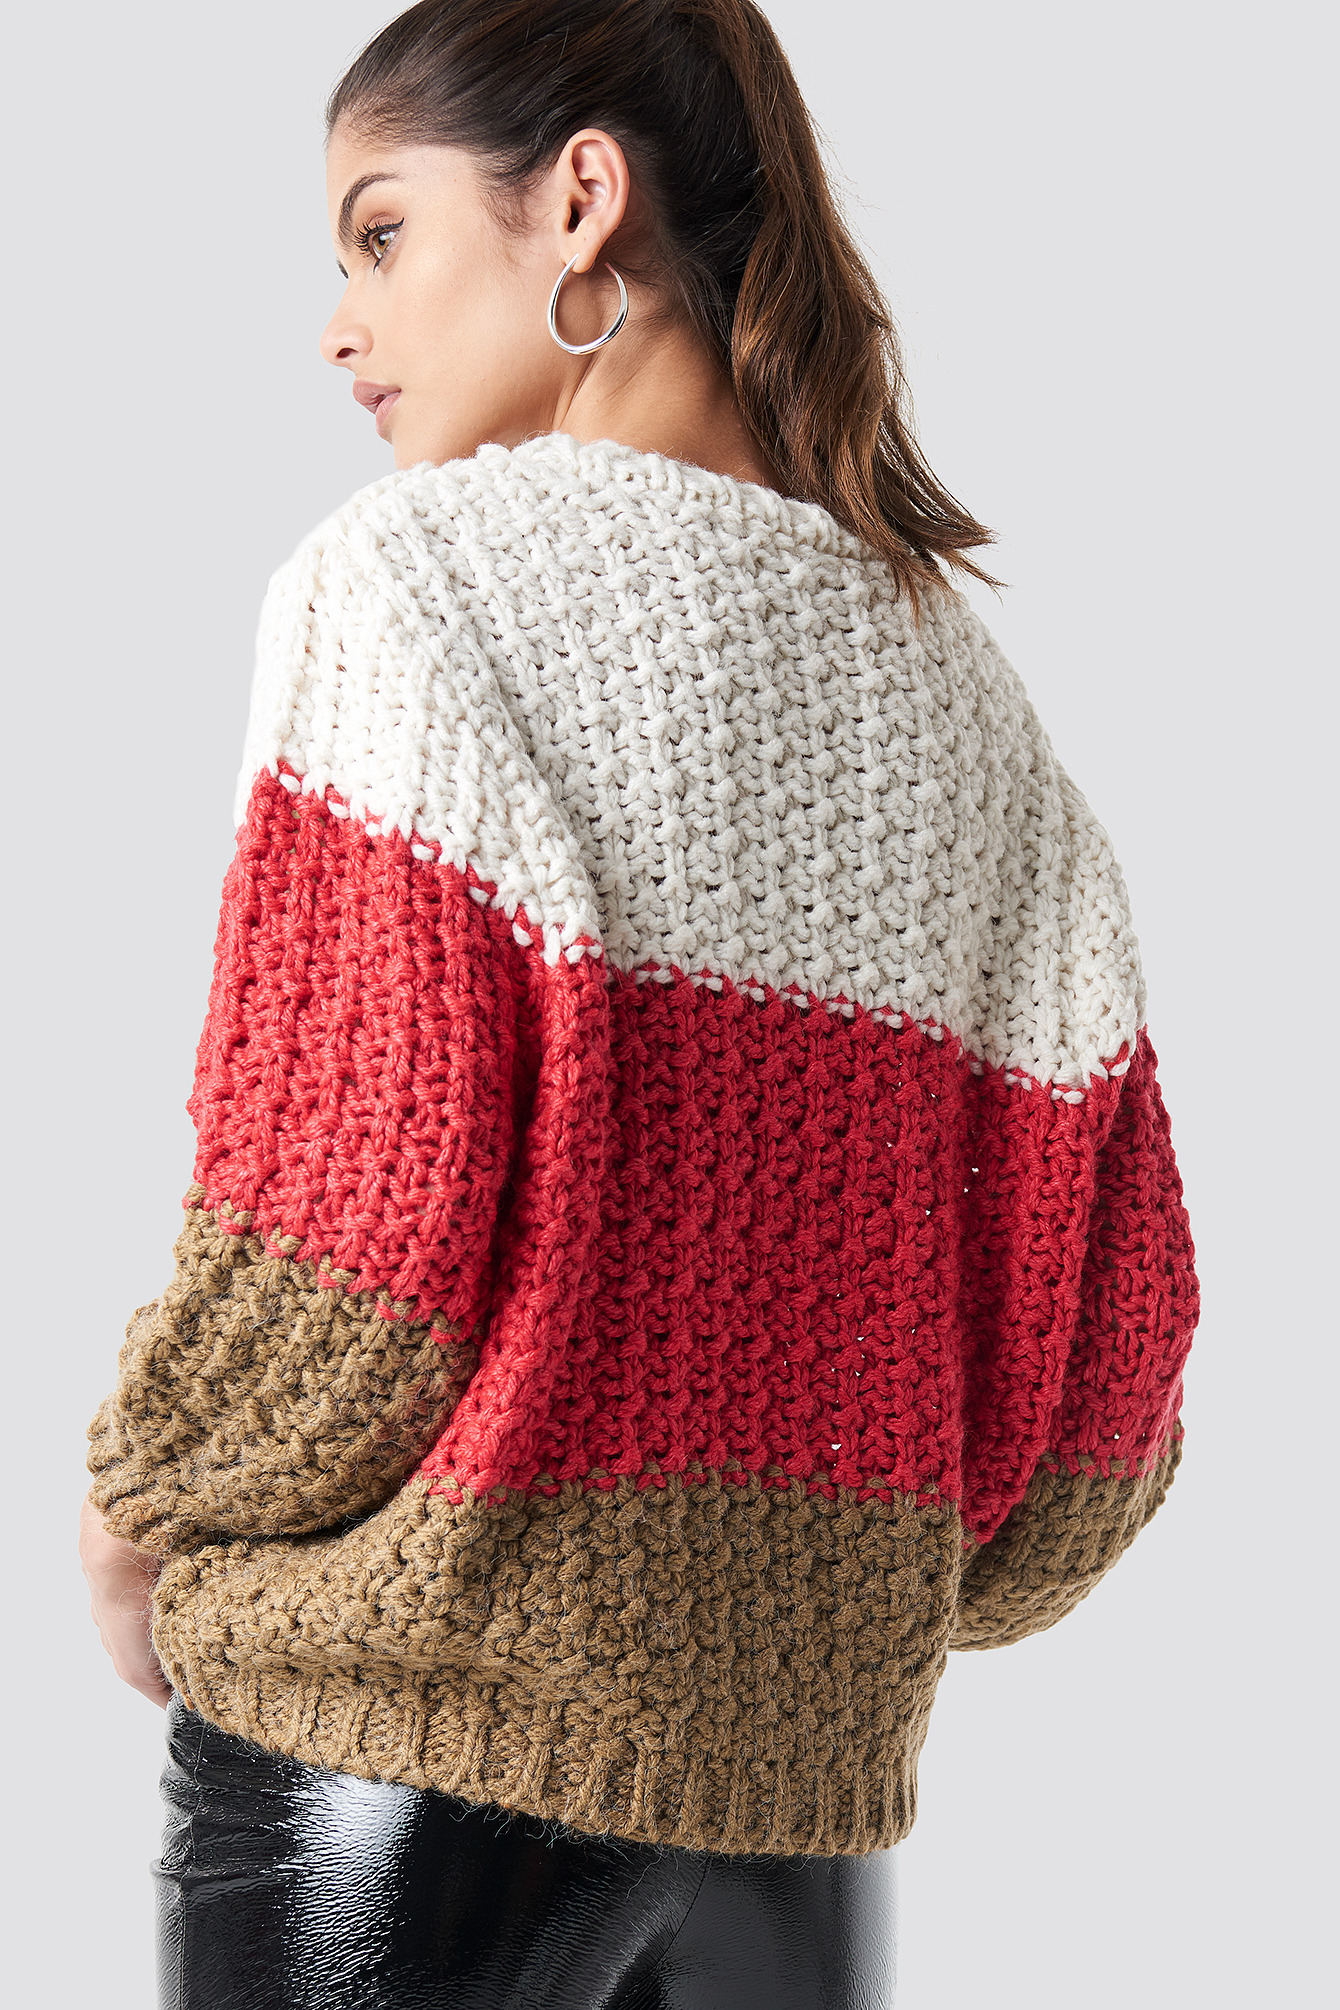 mango -  Cabin Sweater - Red,Multicolor